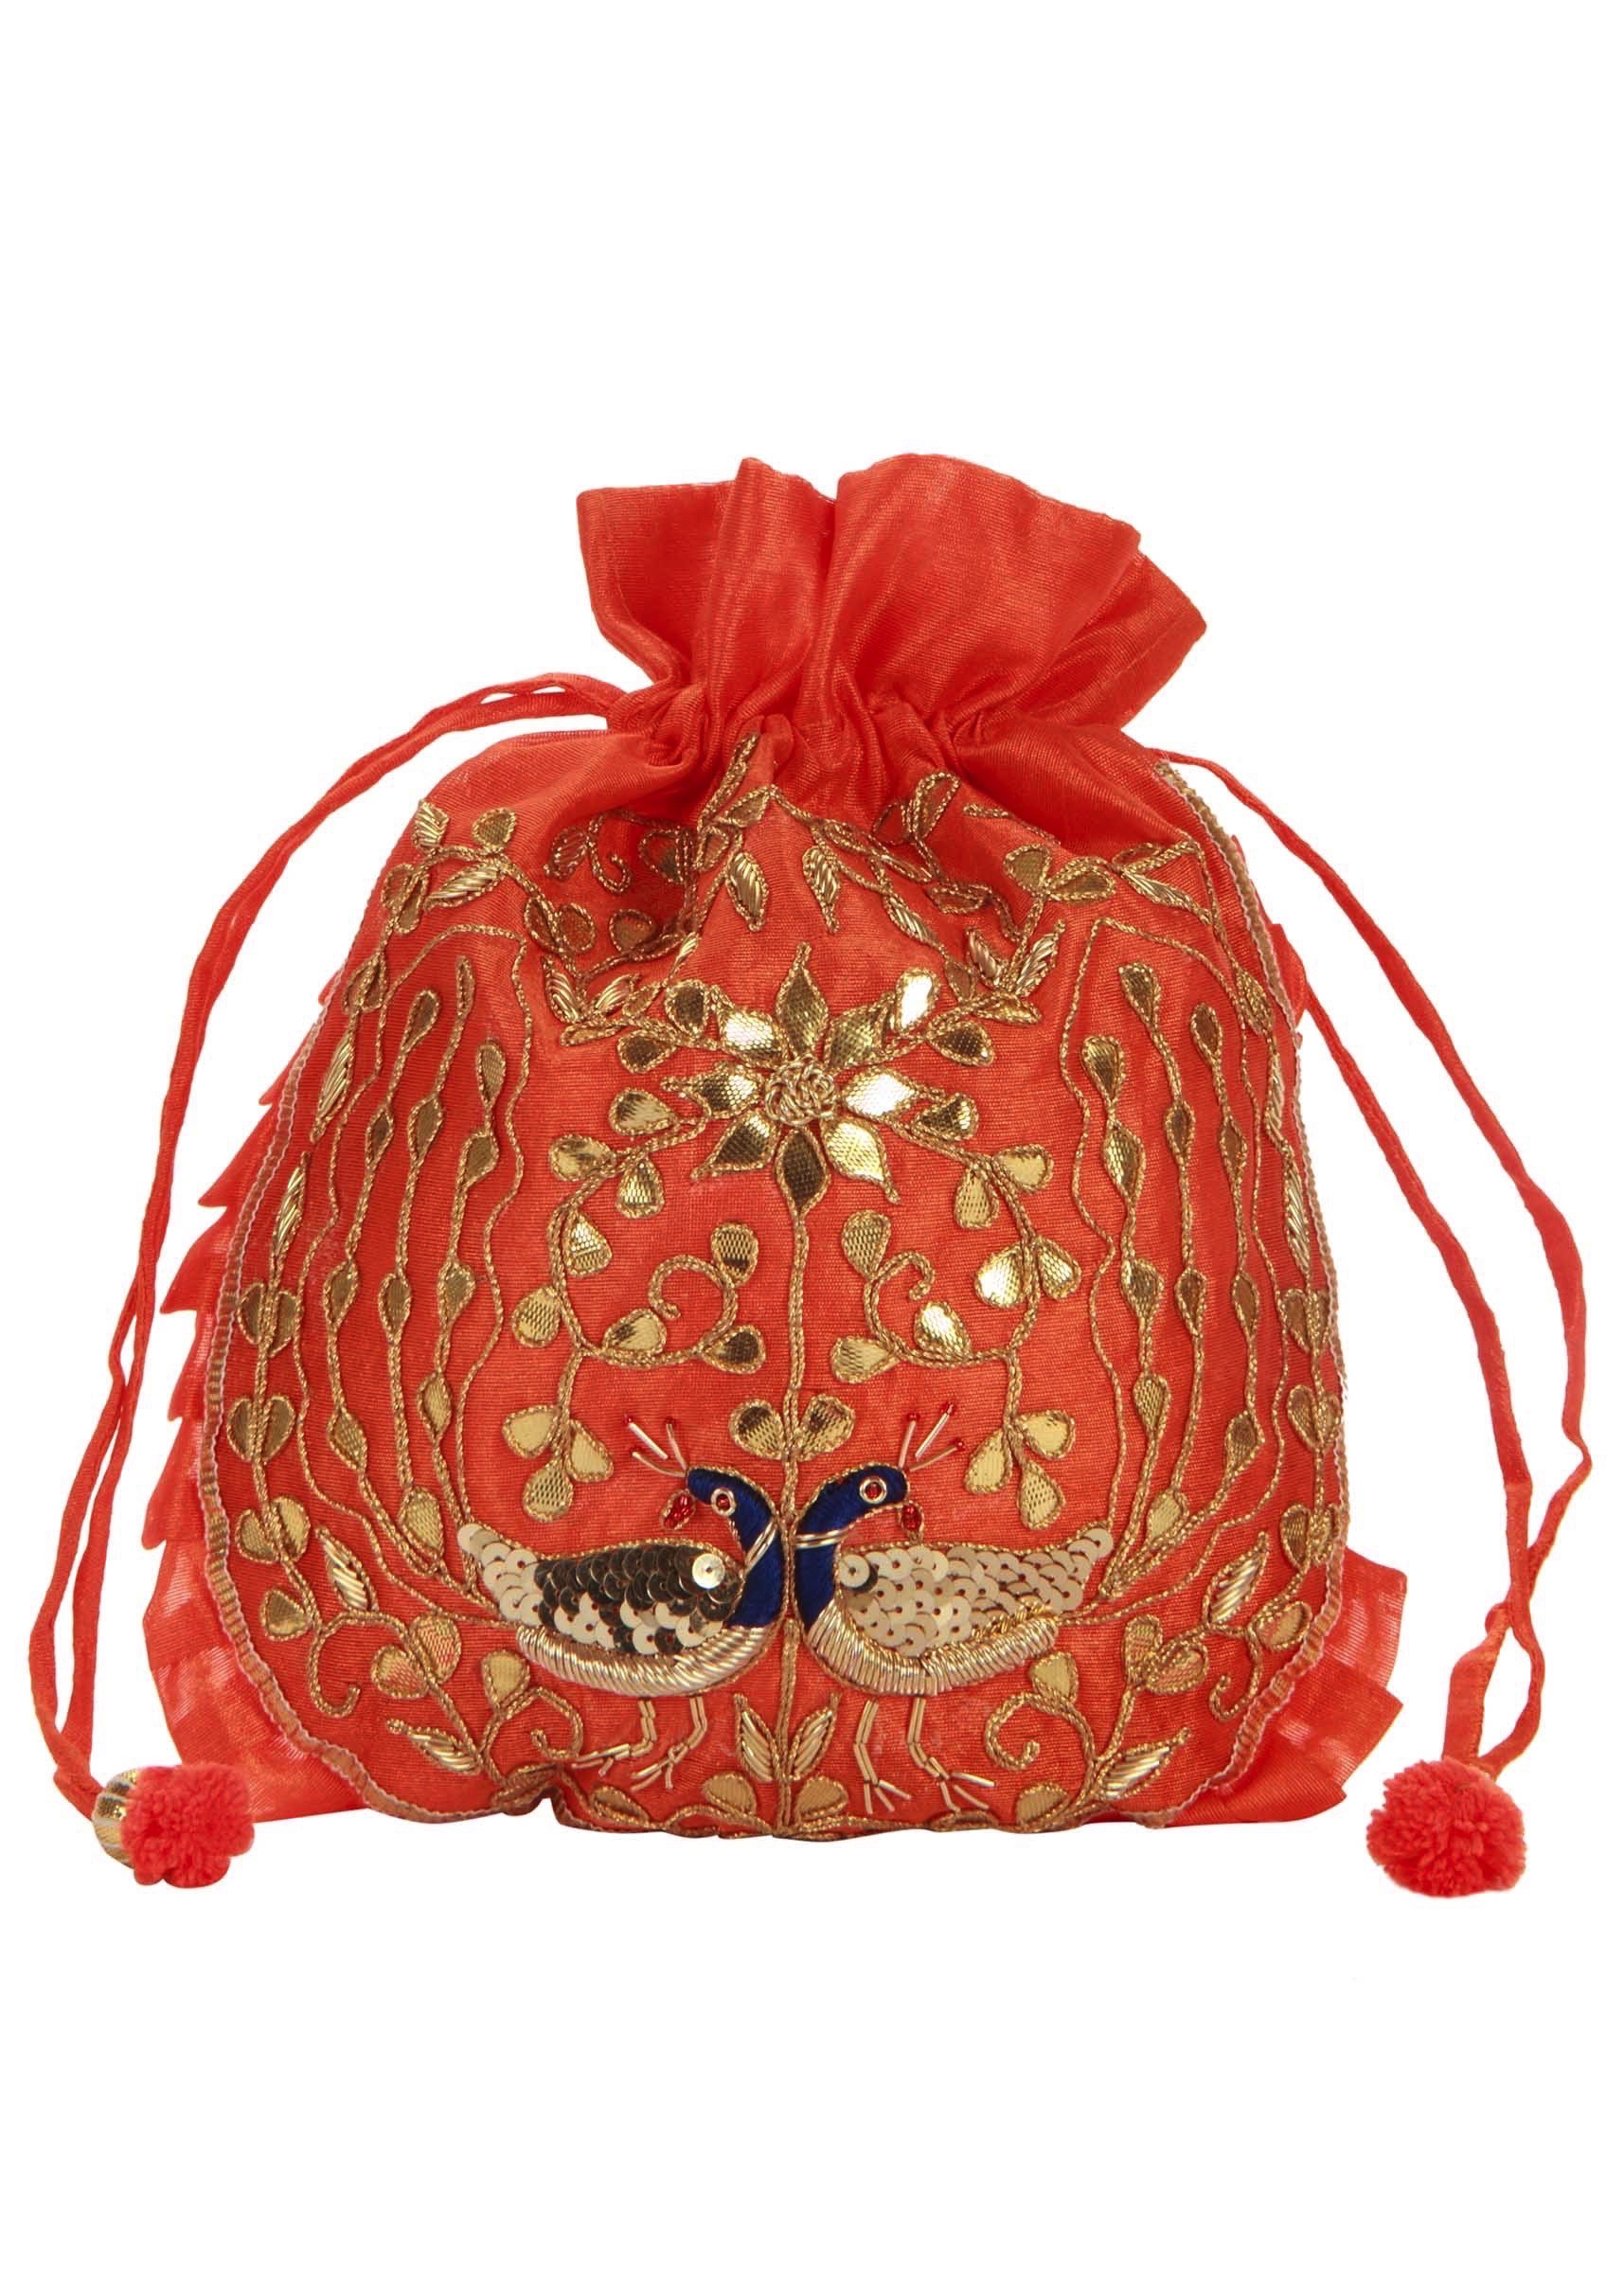 ce59c898692 Coral and Gold Dori peacock Embroidered Potli Bag only on Kalki